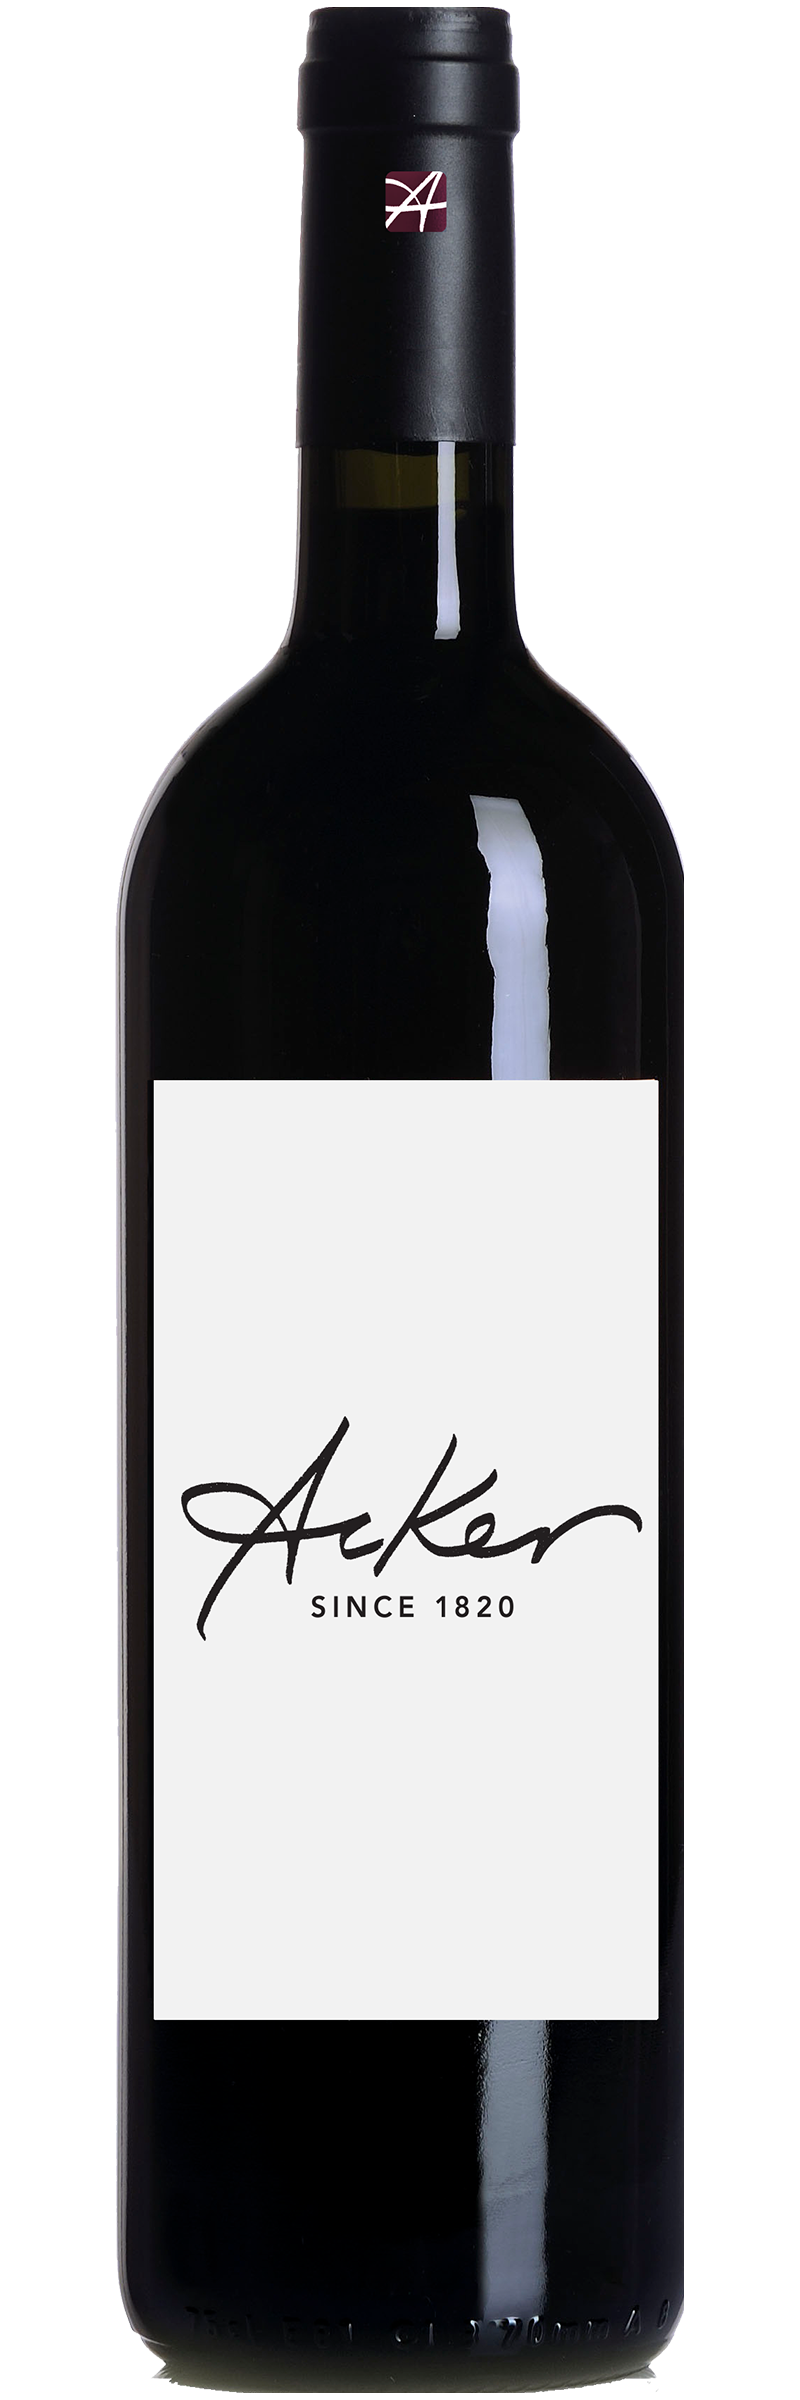 2009 Arietta Cabernet Sauvignon Arietta Cabernet Sauvignon magnum – March 1st Online Auction – Week 10 Lot #1495